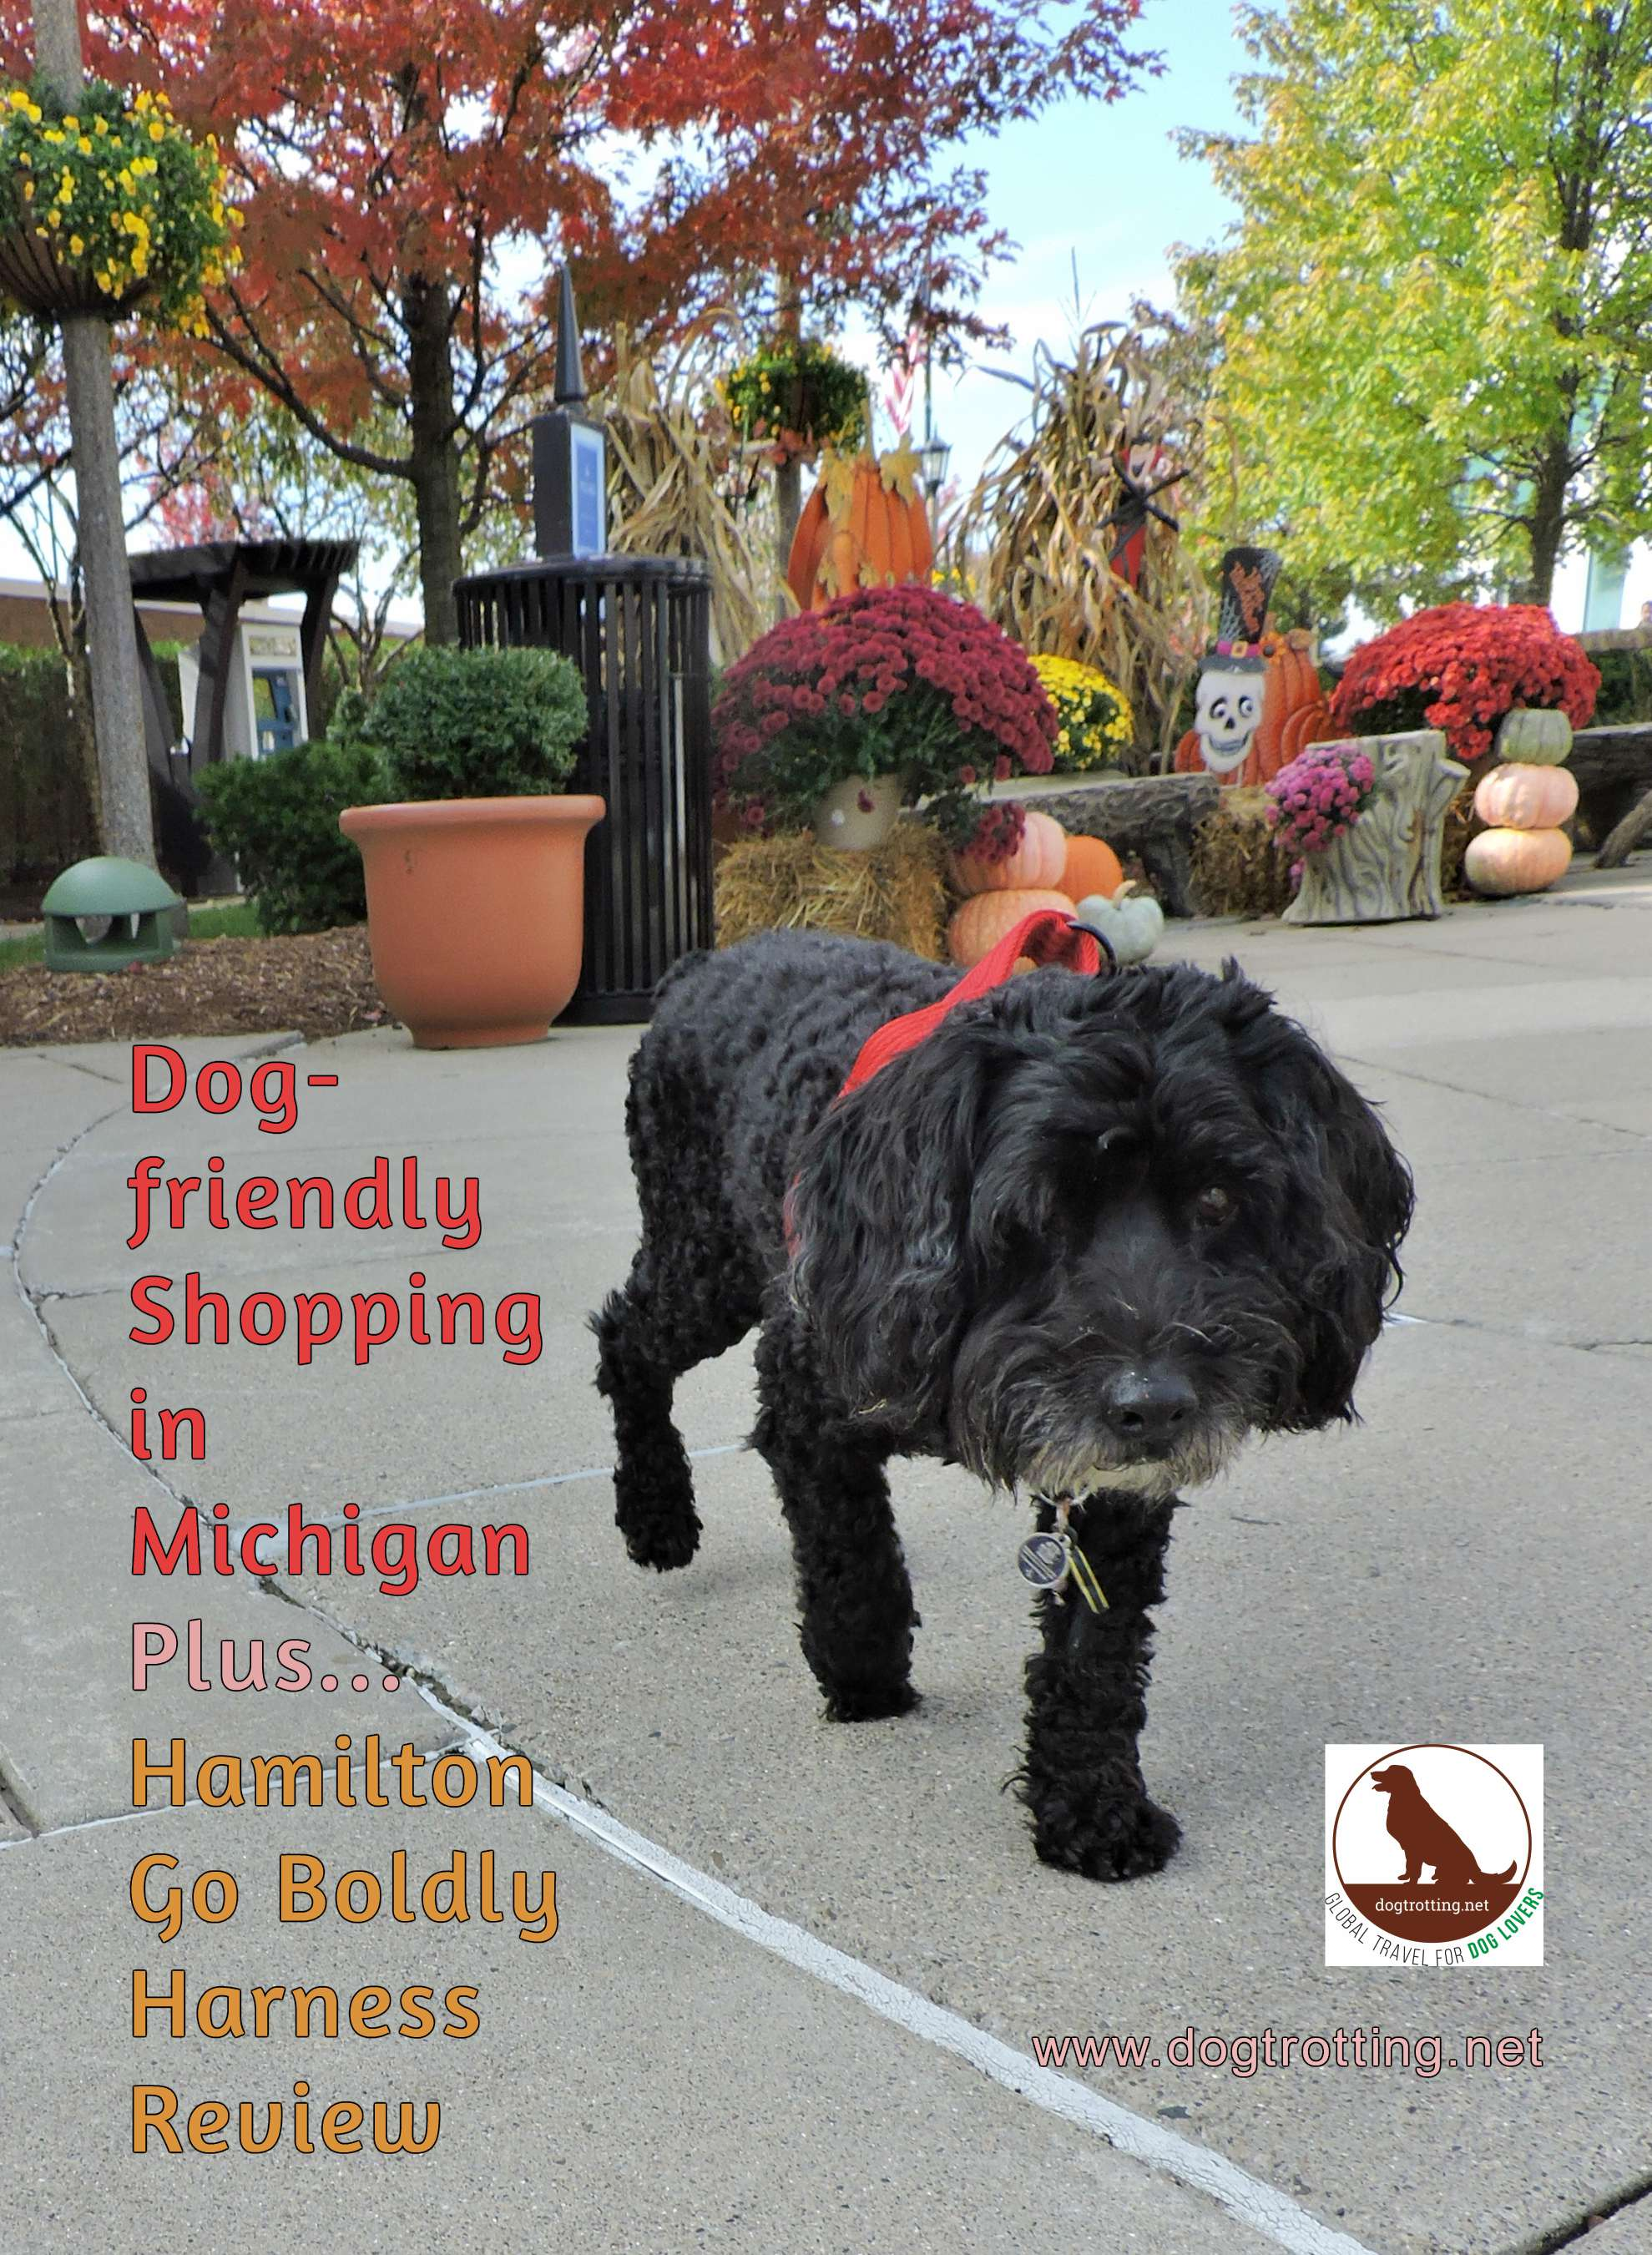 Travel MI: Dog-friendly Michigan Malls and Go Boldly Harness review